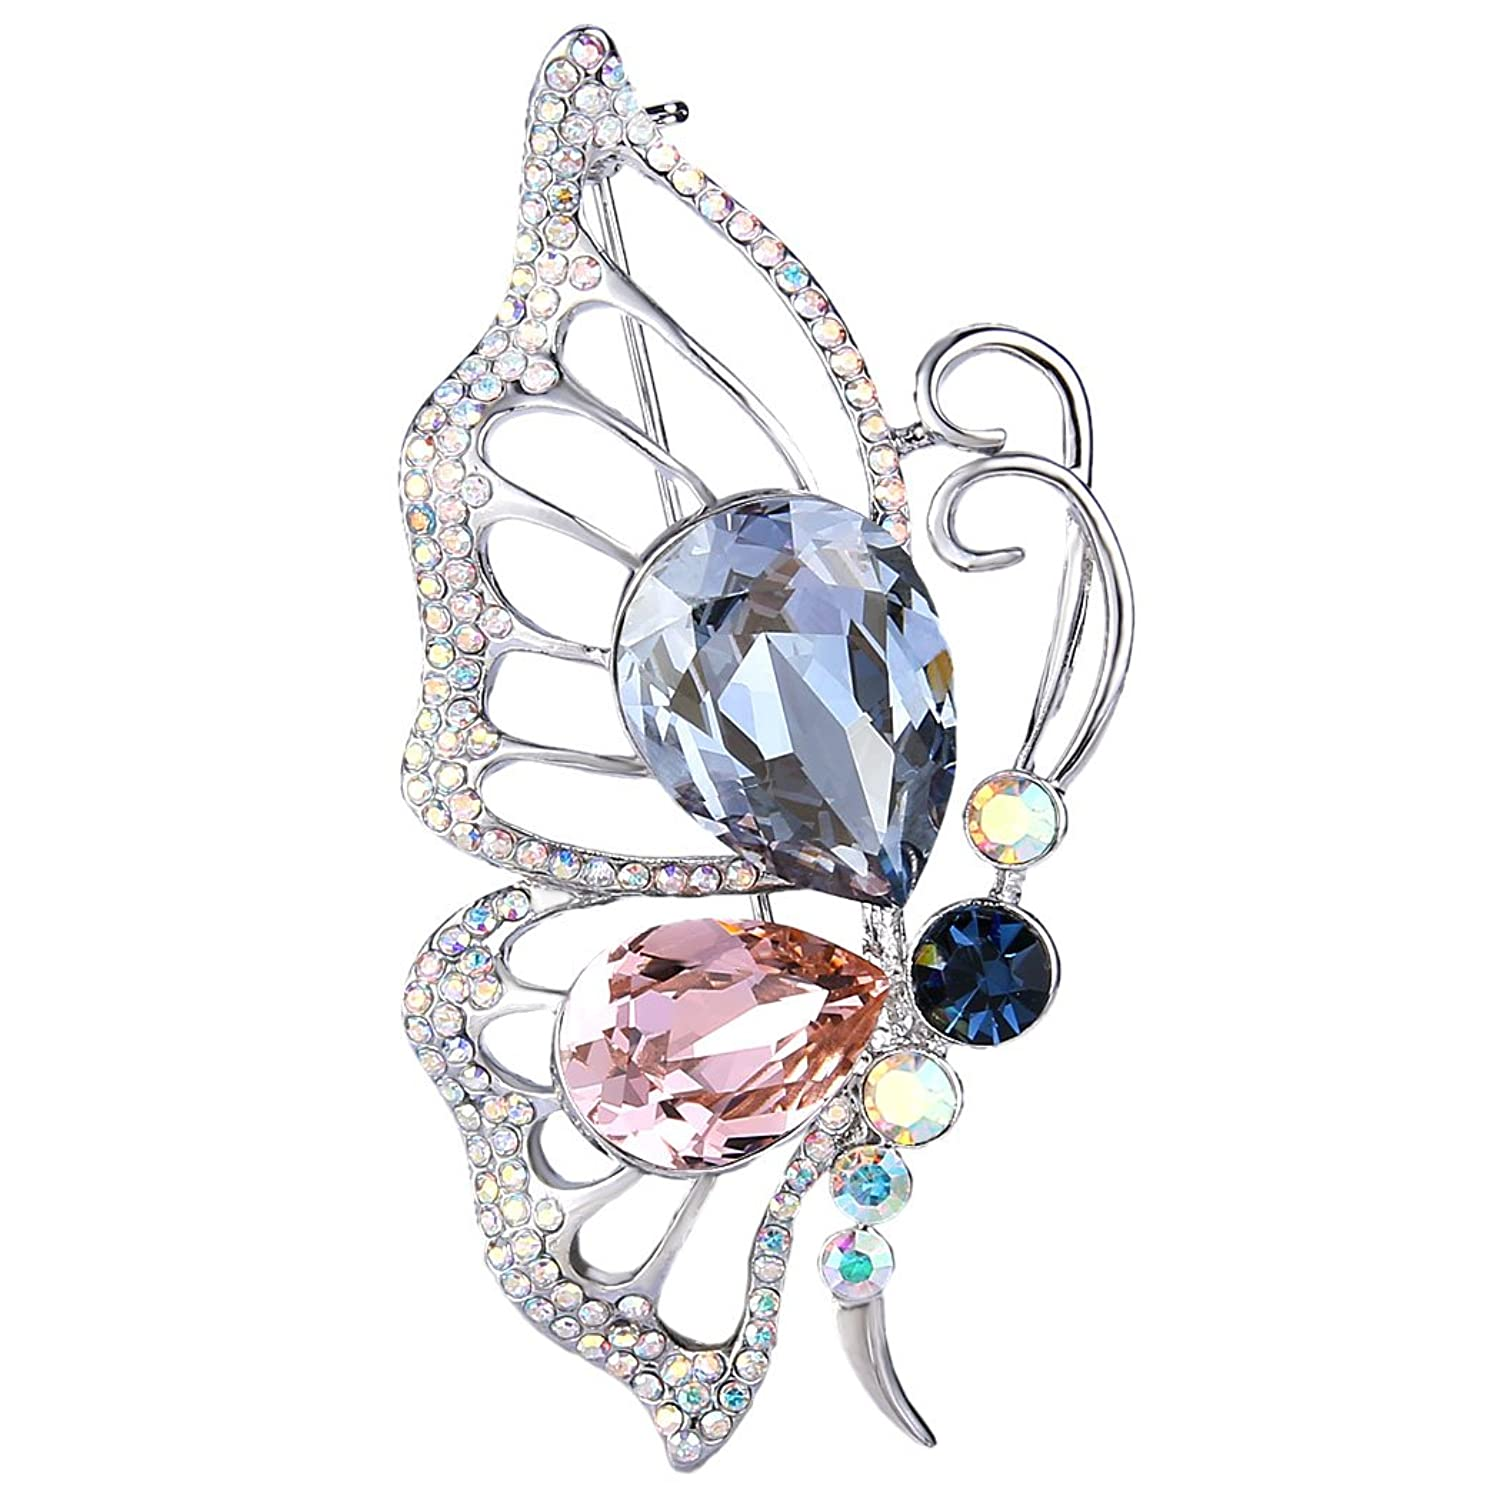 e7e60eb38 EleQueen Women's Silver-tone Flying Butterfly Brooch Pin Multicolor Adorned  with Swarovski Crystals